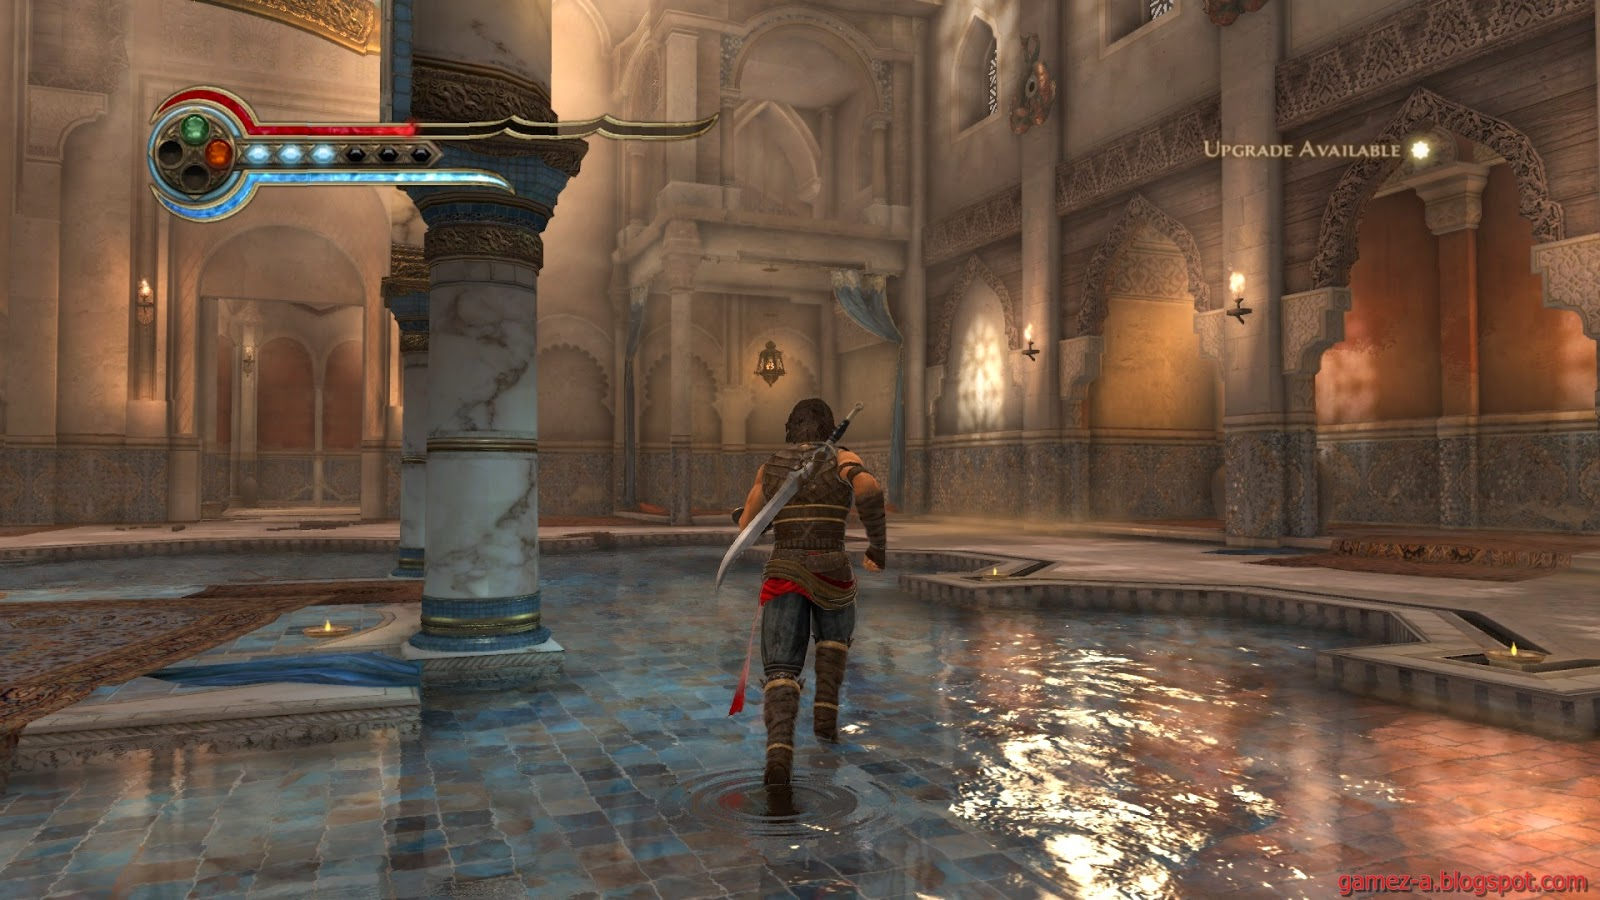 Prince of Persia Classic Game Download For PC Free Full Version